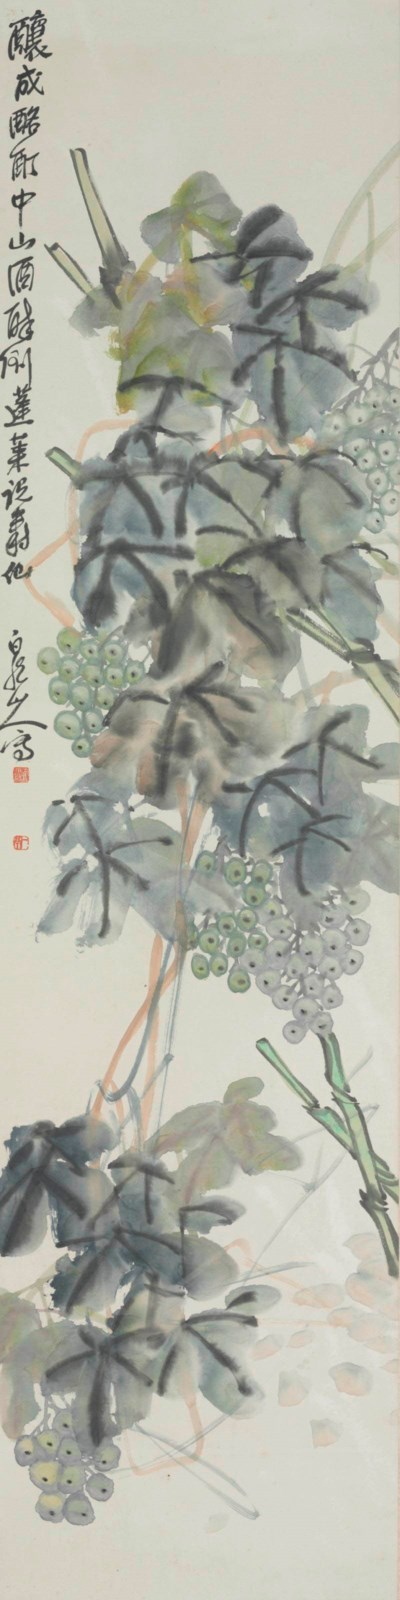 A CHINESE HANGING SCROLL OF GR